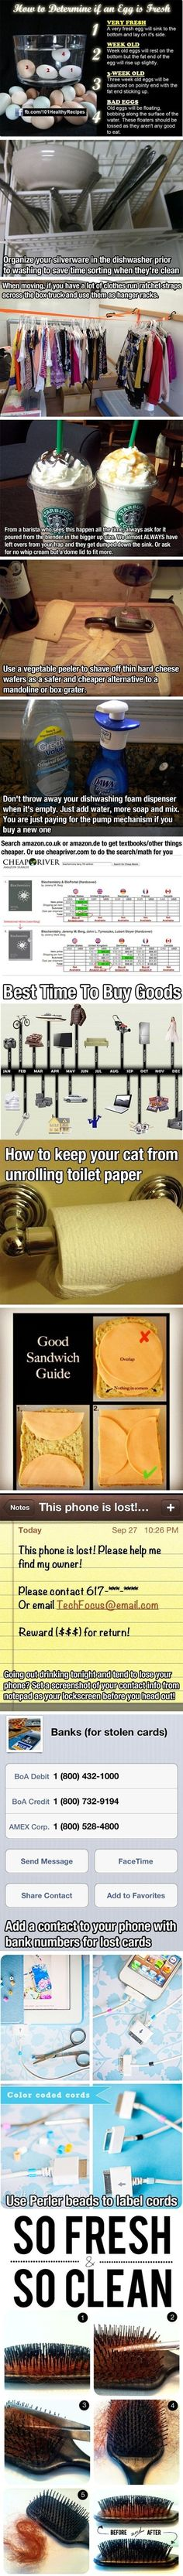 Life Hacks - funny pictures #funnypictures